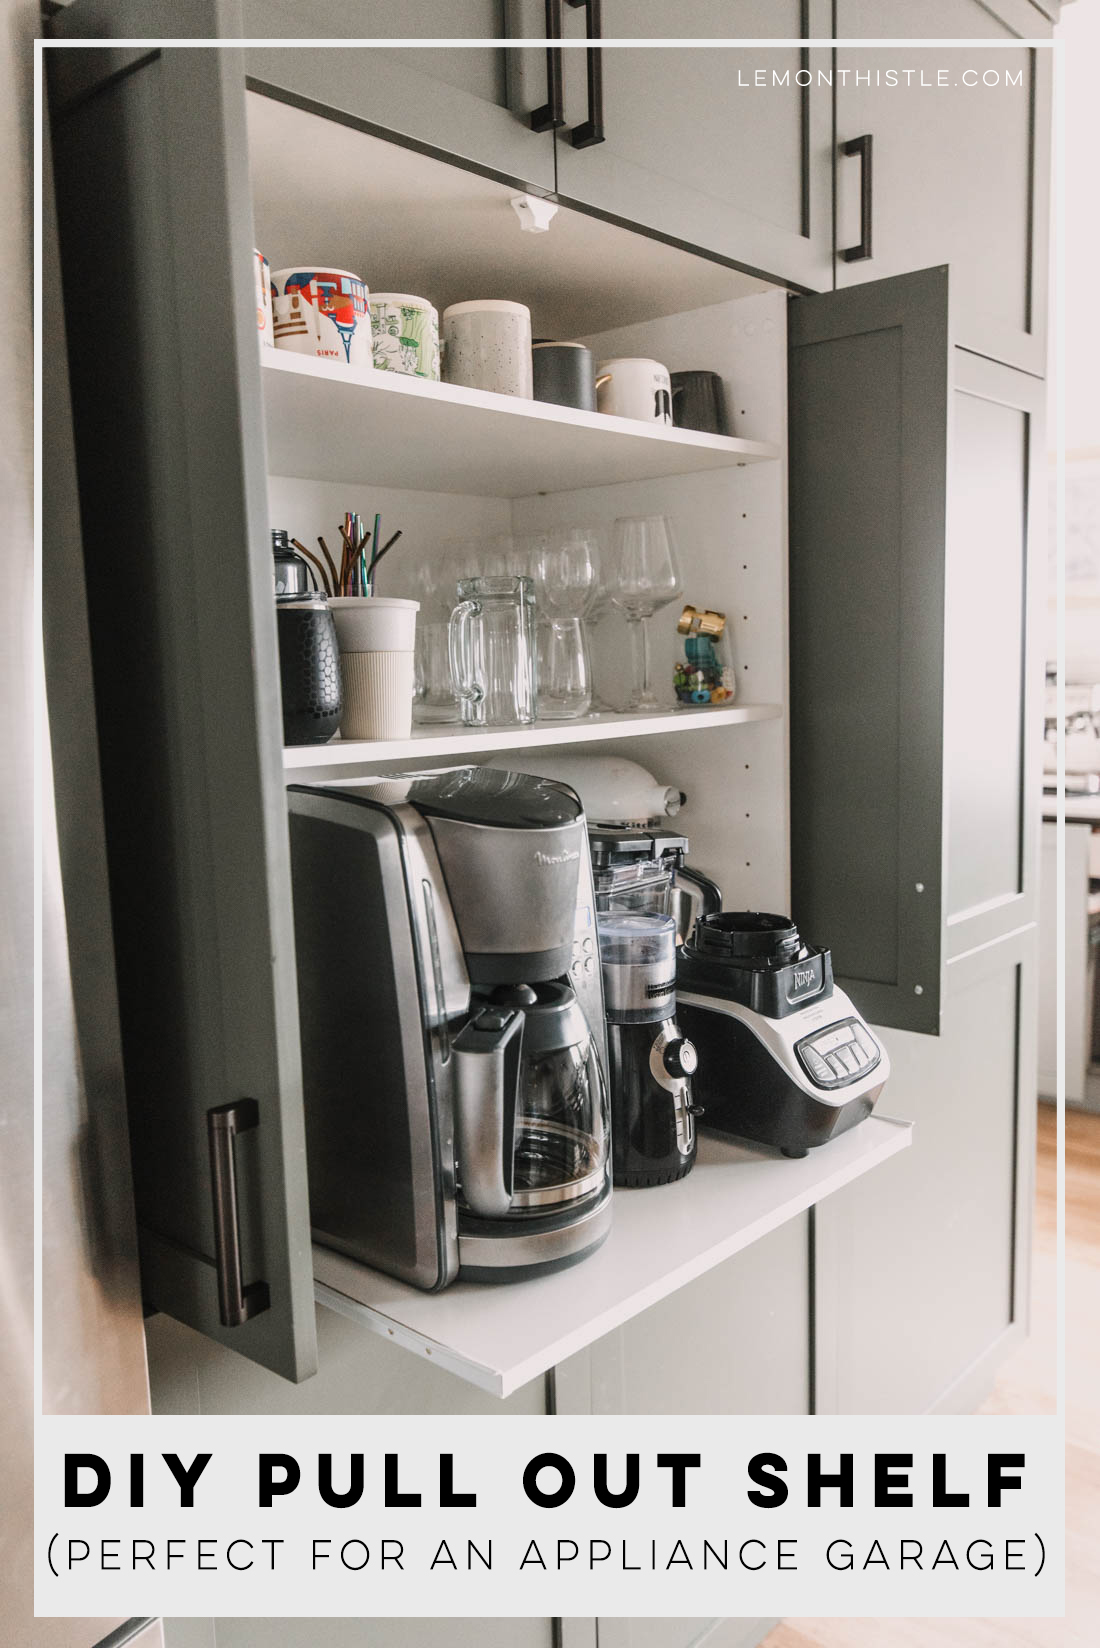 diy pull out shelf for appliance garage